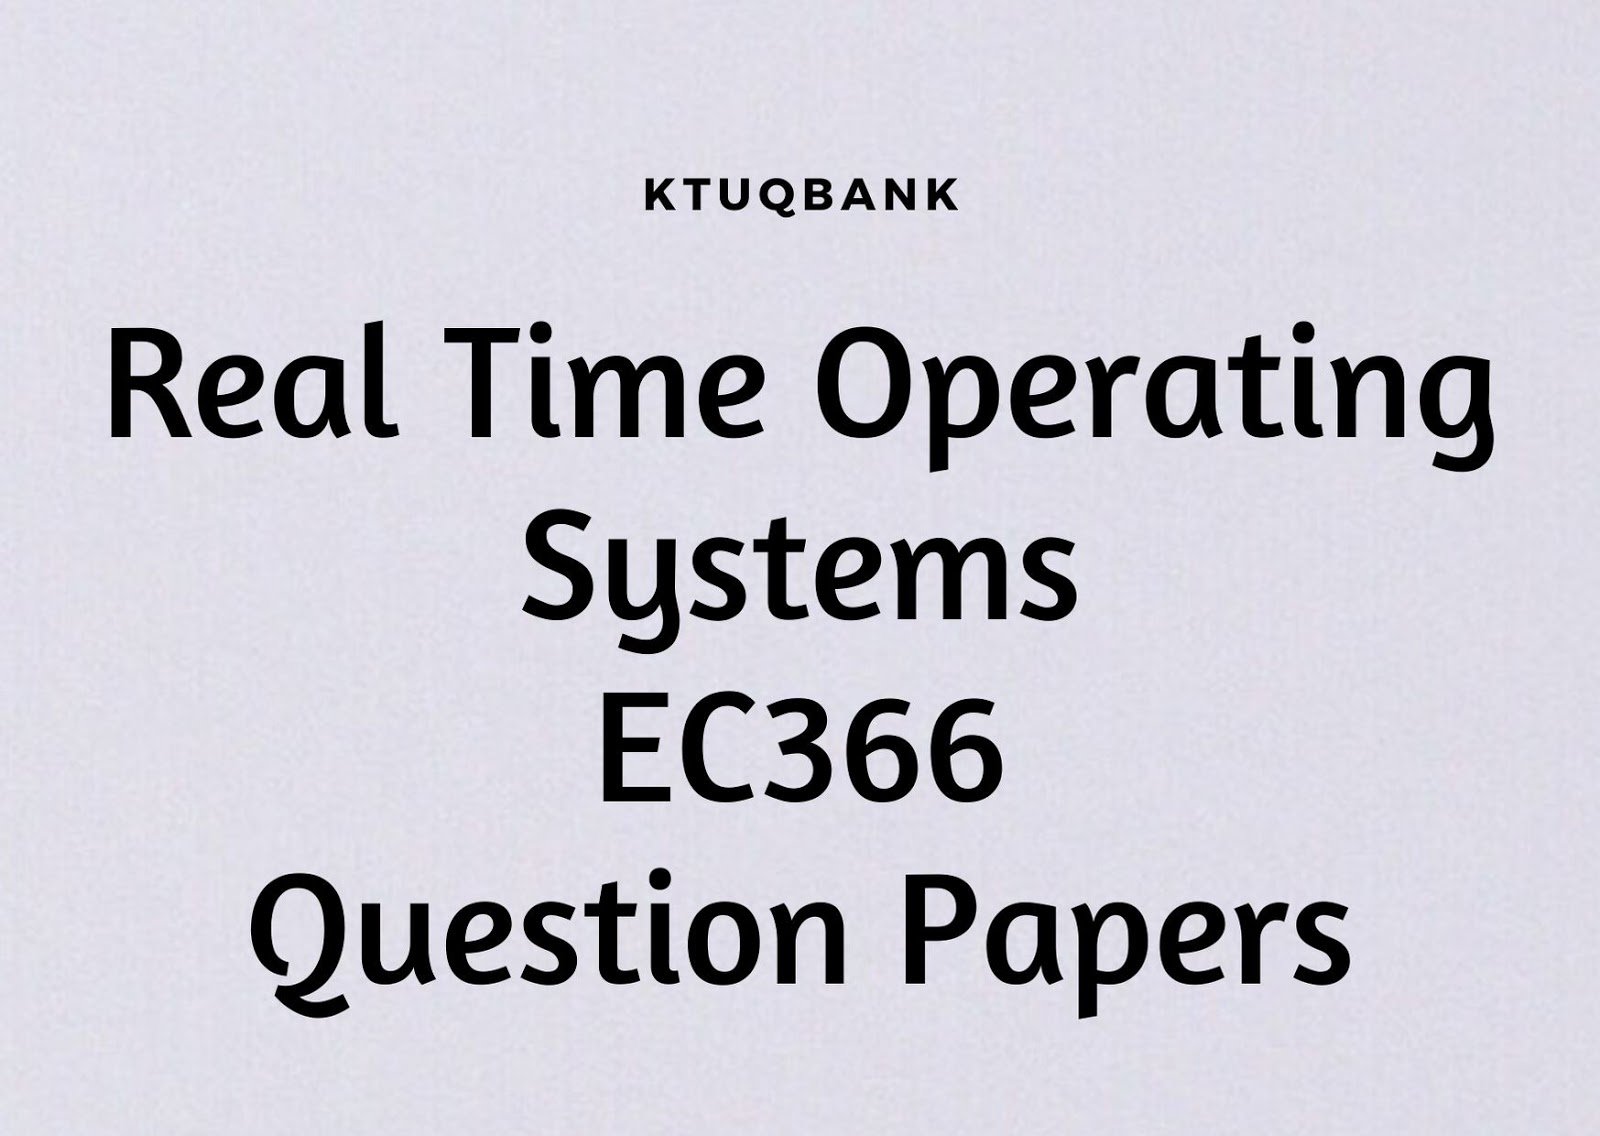 Real Time Operating Systems | EC366 | Question Papers (2015 batch)